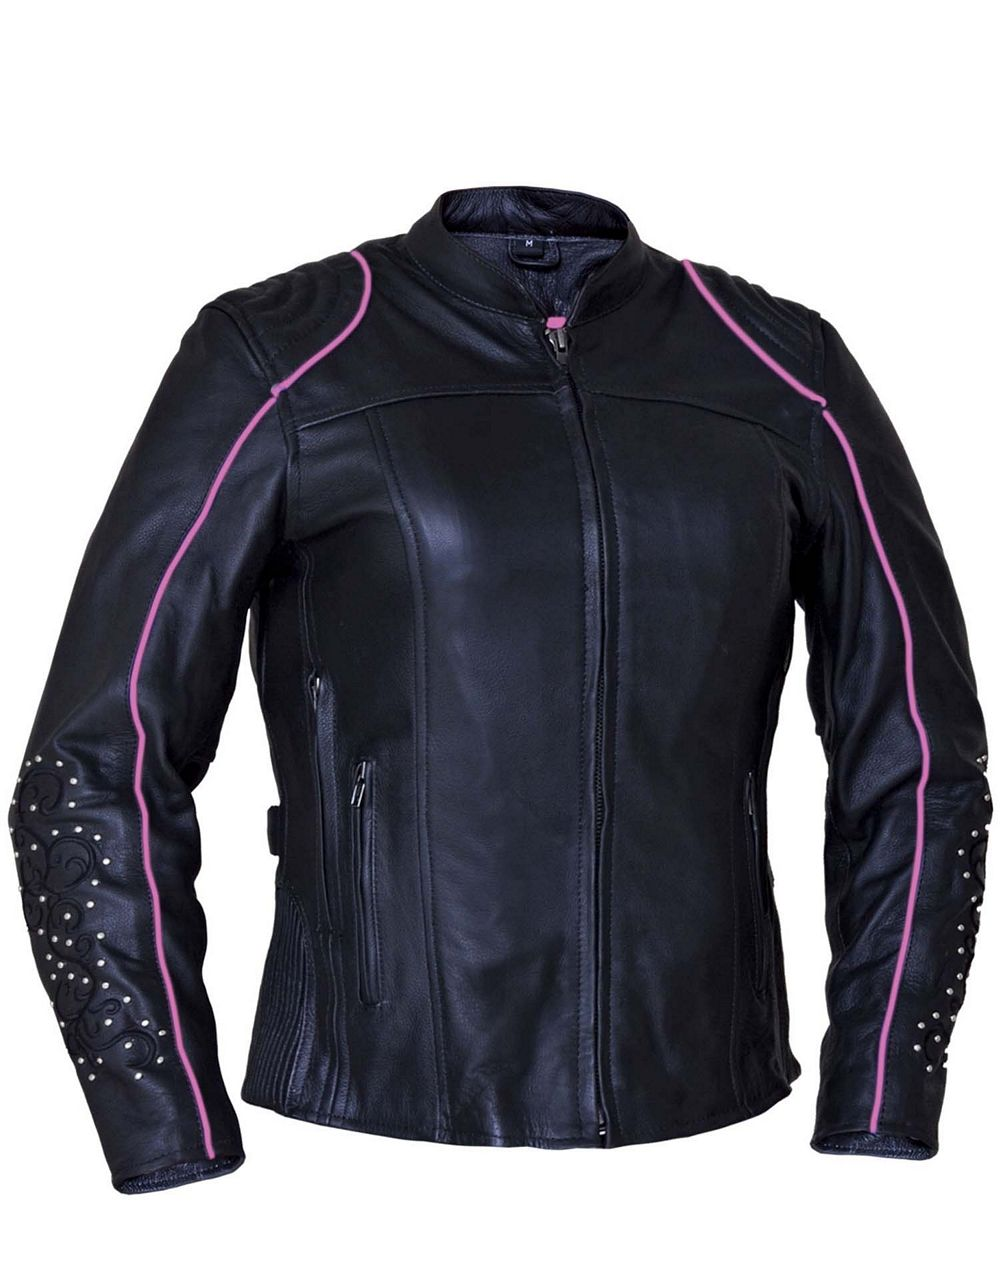 Womens Premium Soft Cowhide Leather Motorcycle Jacket W